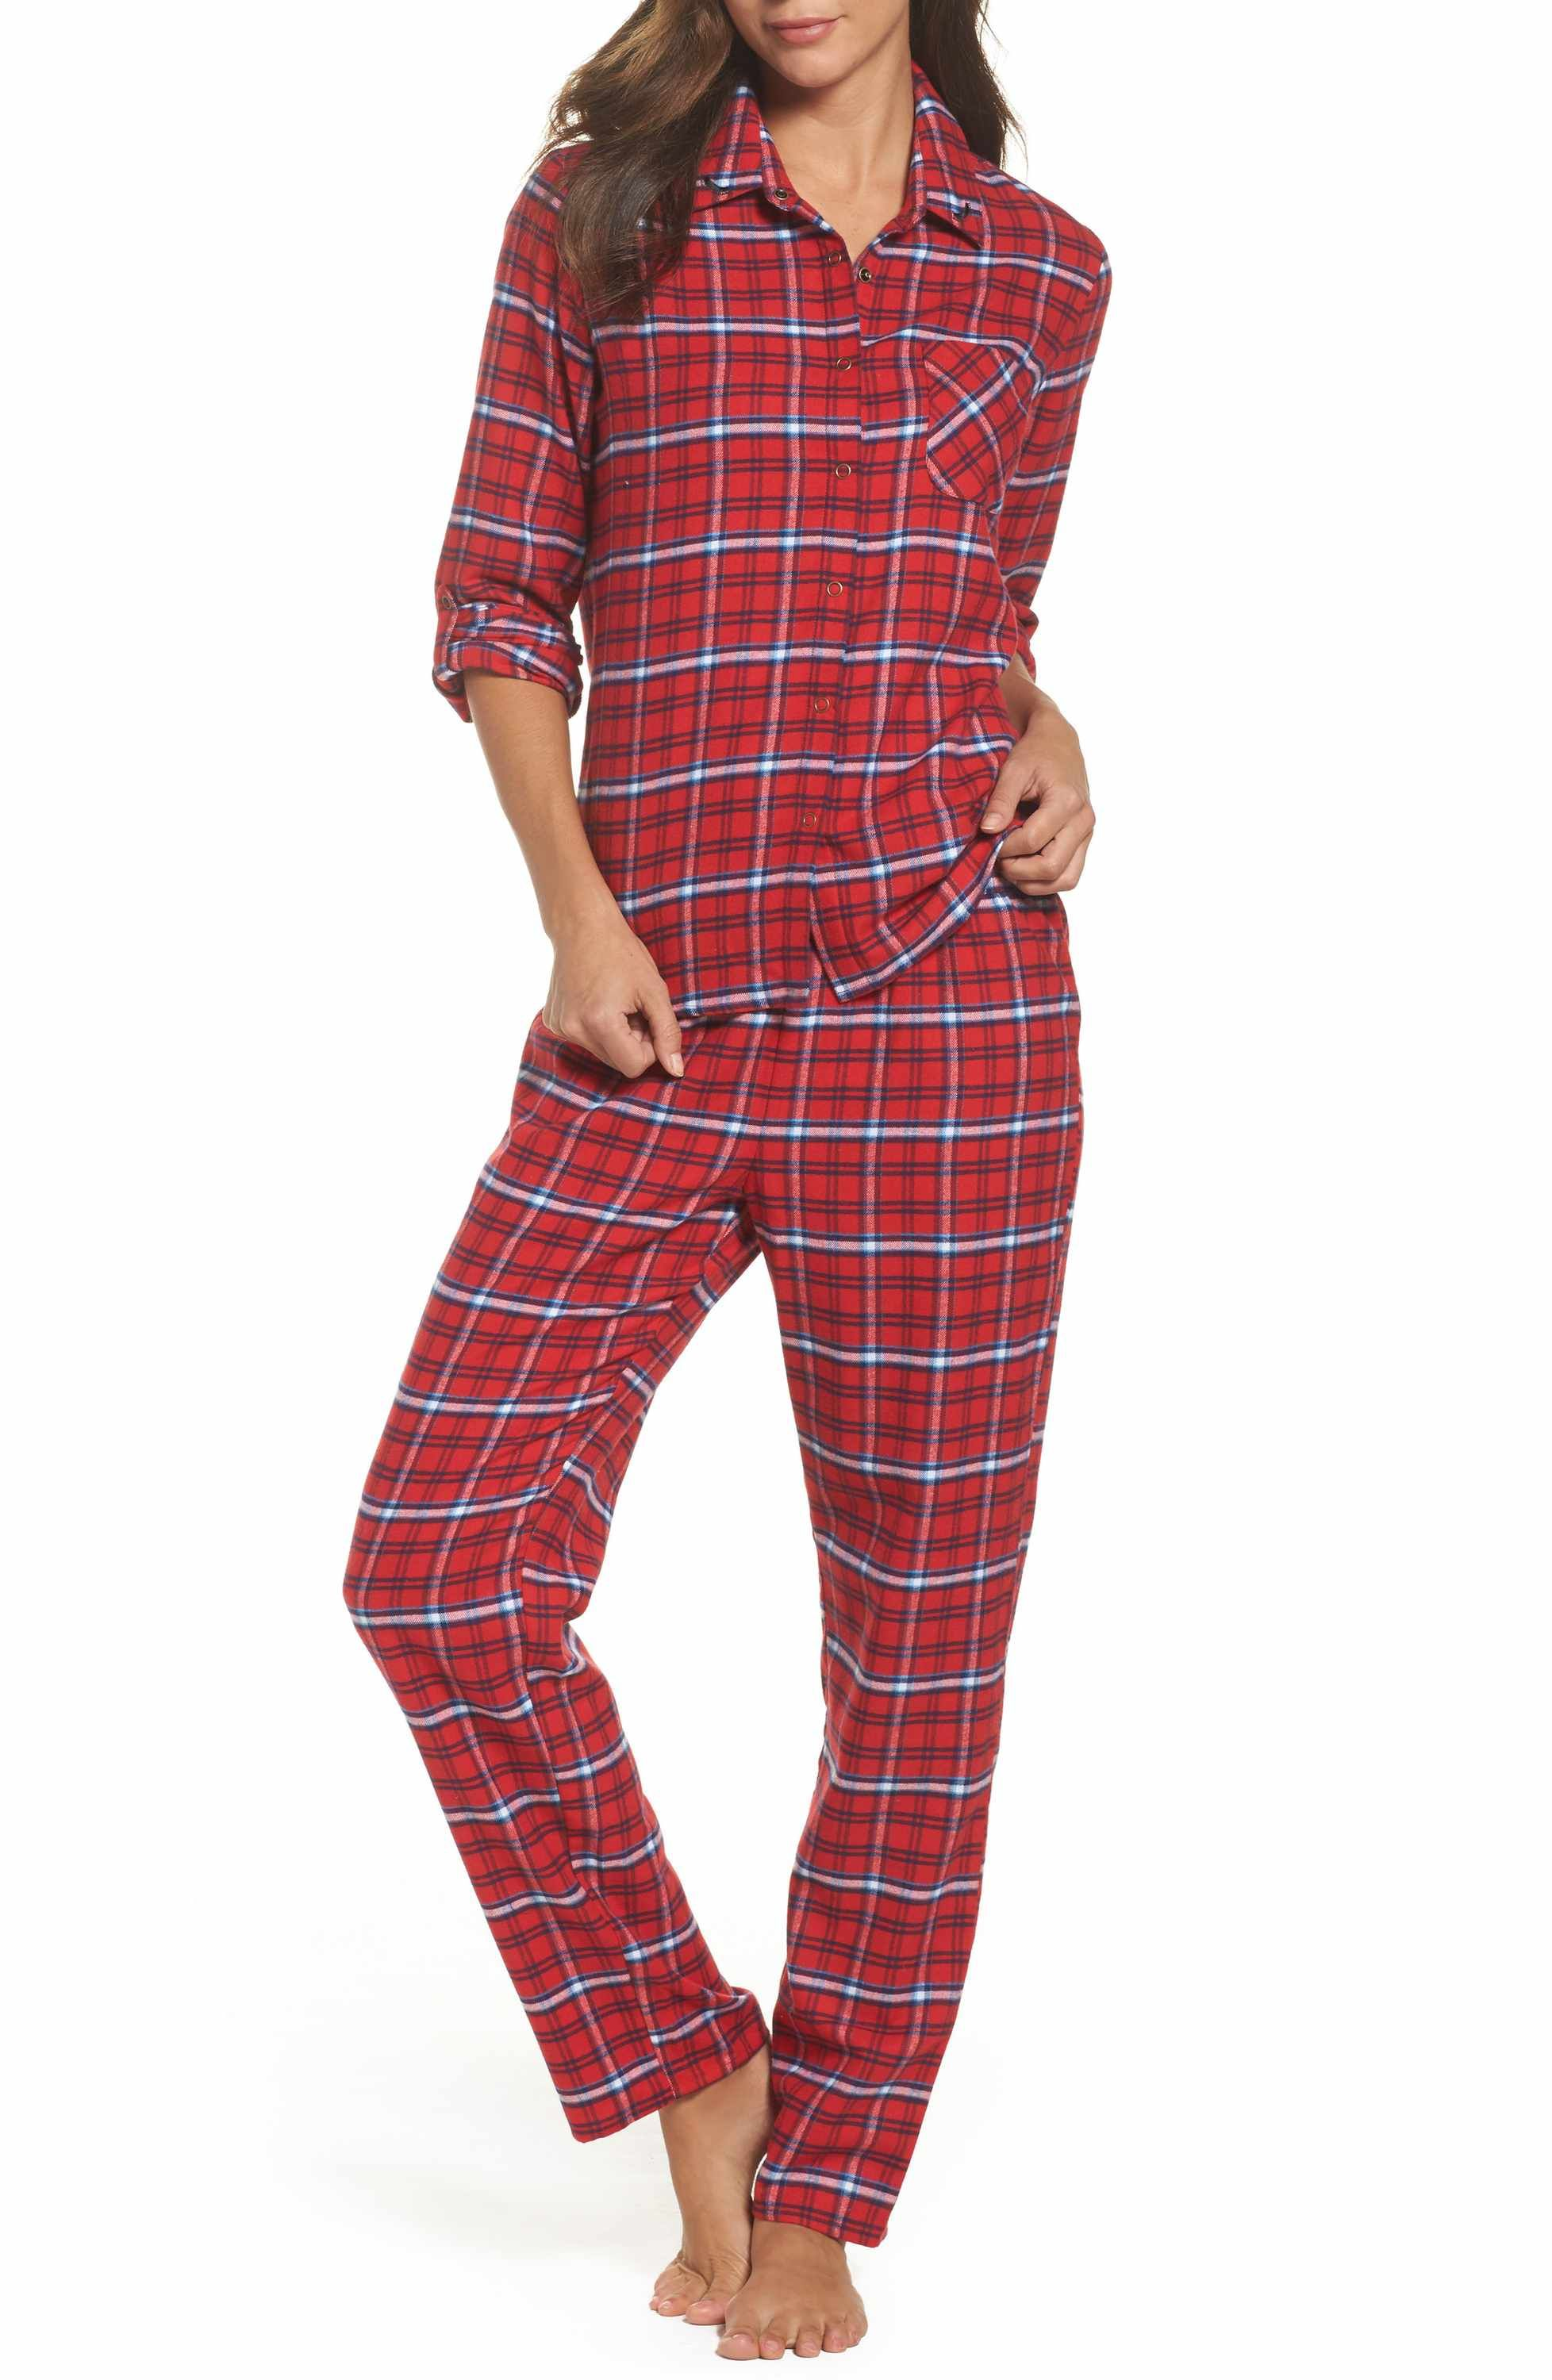 Red flannel pajama pants  Flannel Girlfriend Pajamas  Flannels Girlfriends and Pyjamas